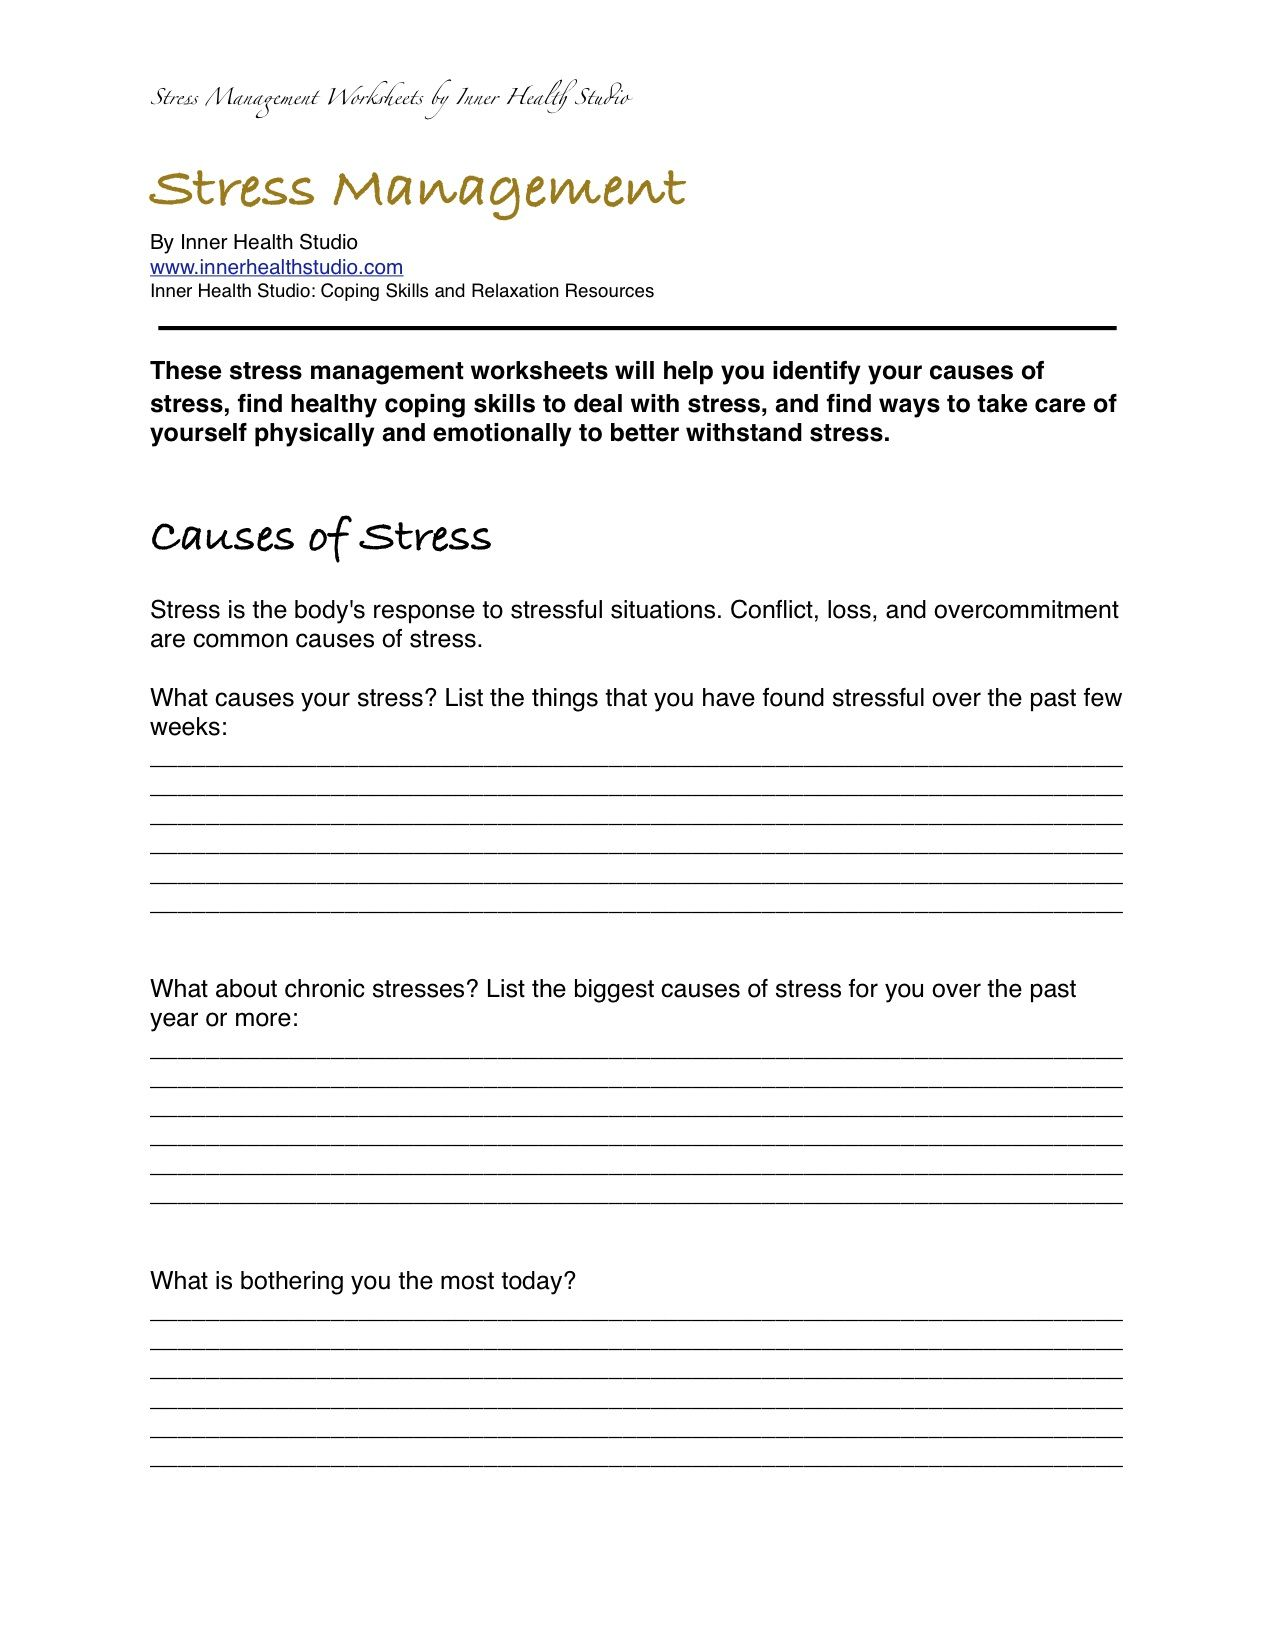 Stress Management Worksheets PDF | Stress management ...